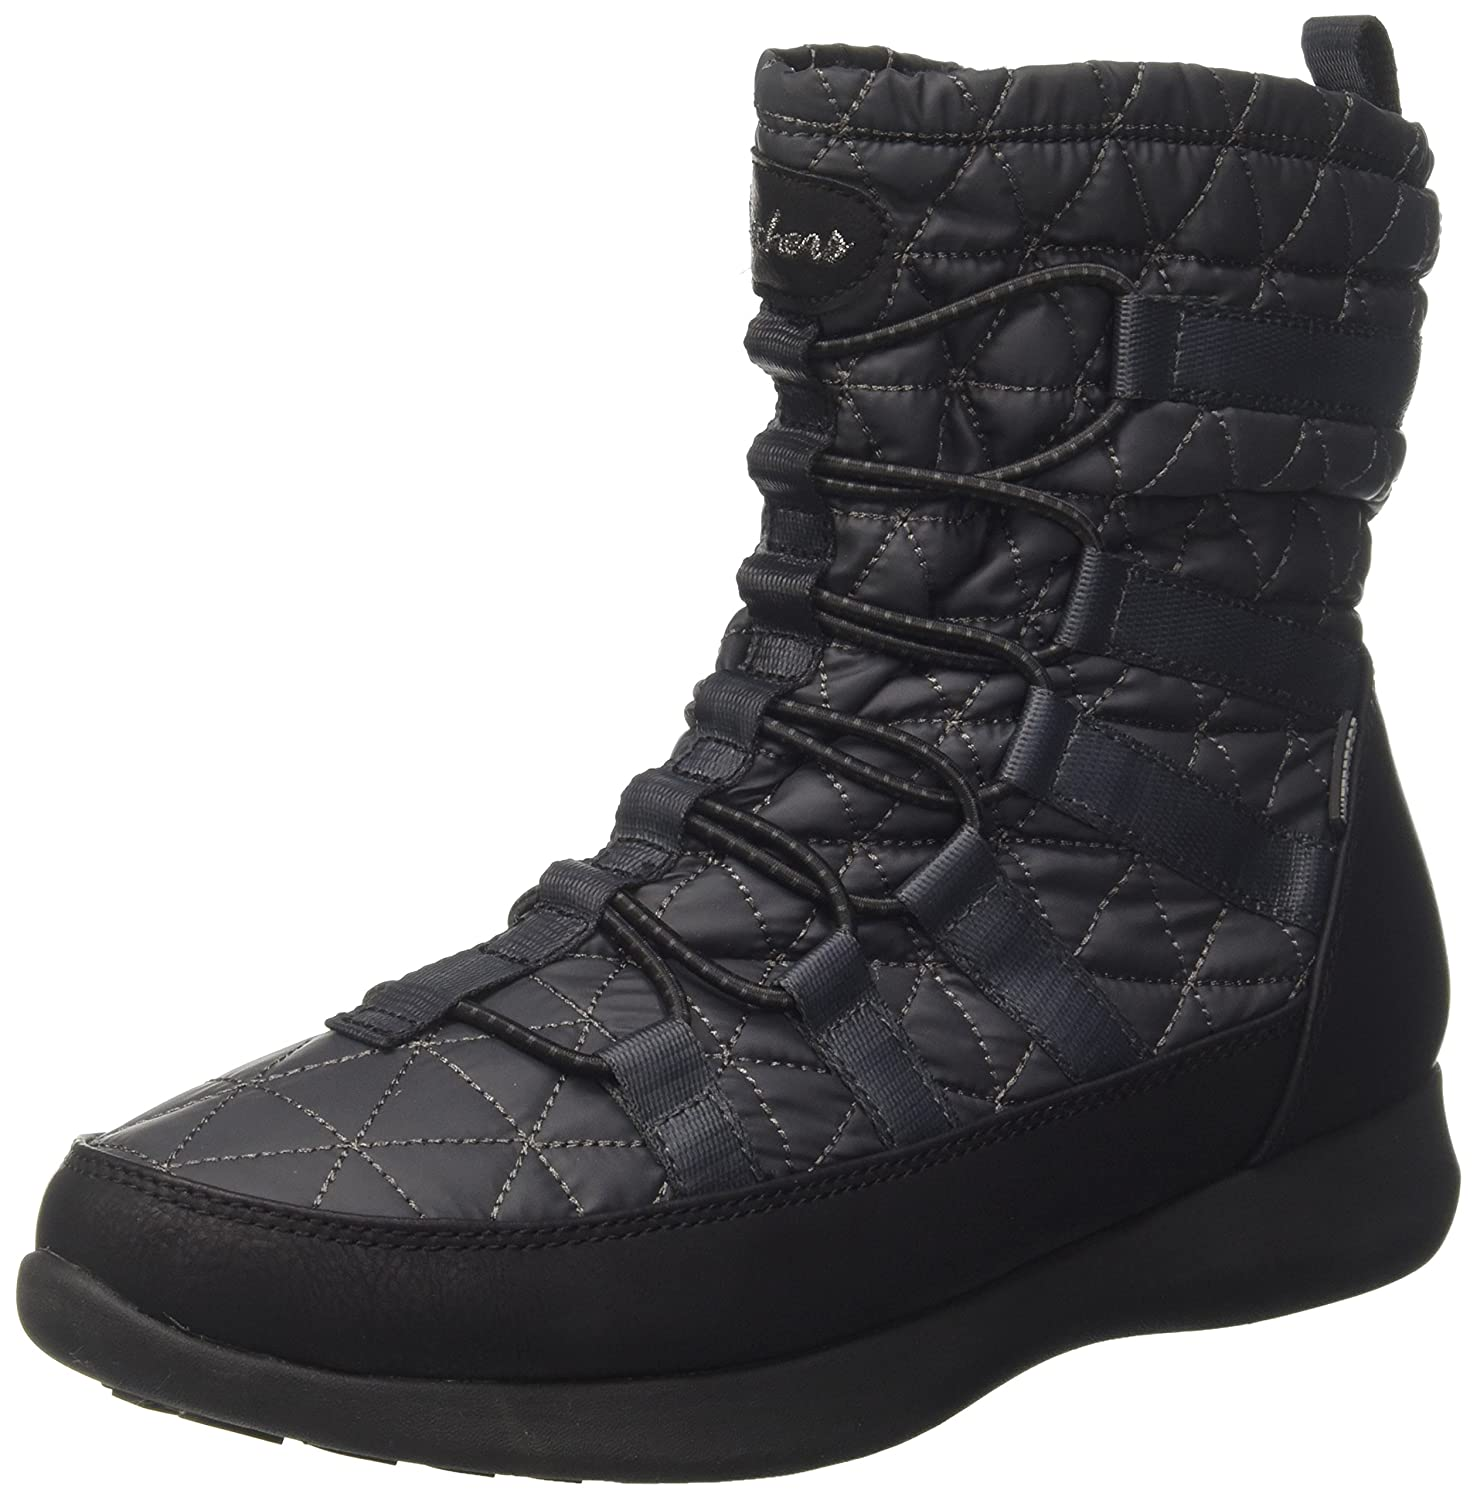 Skechers Women's Boulder Snow Boot B01N17H6B6 7 B(M) US|Charcoal/Black